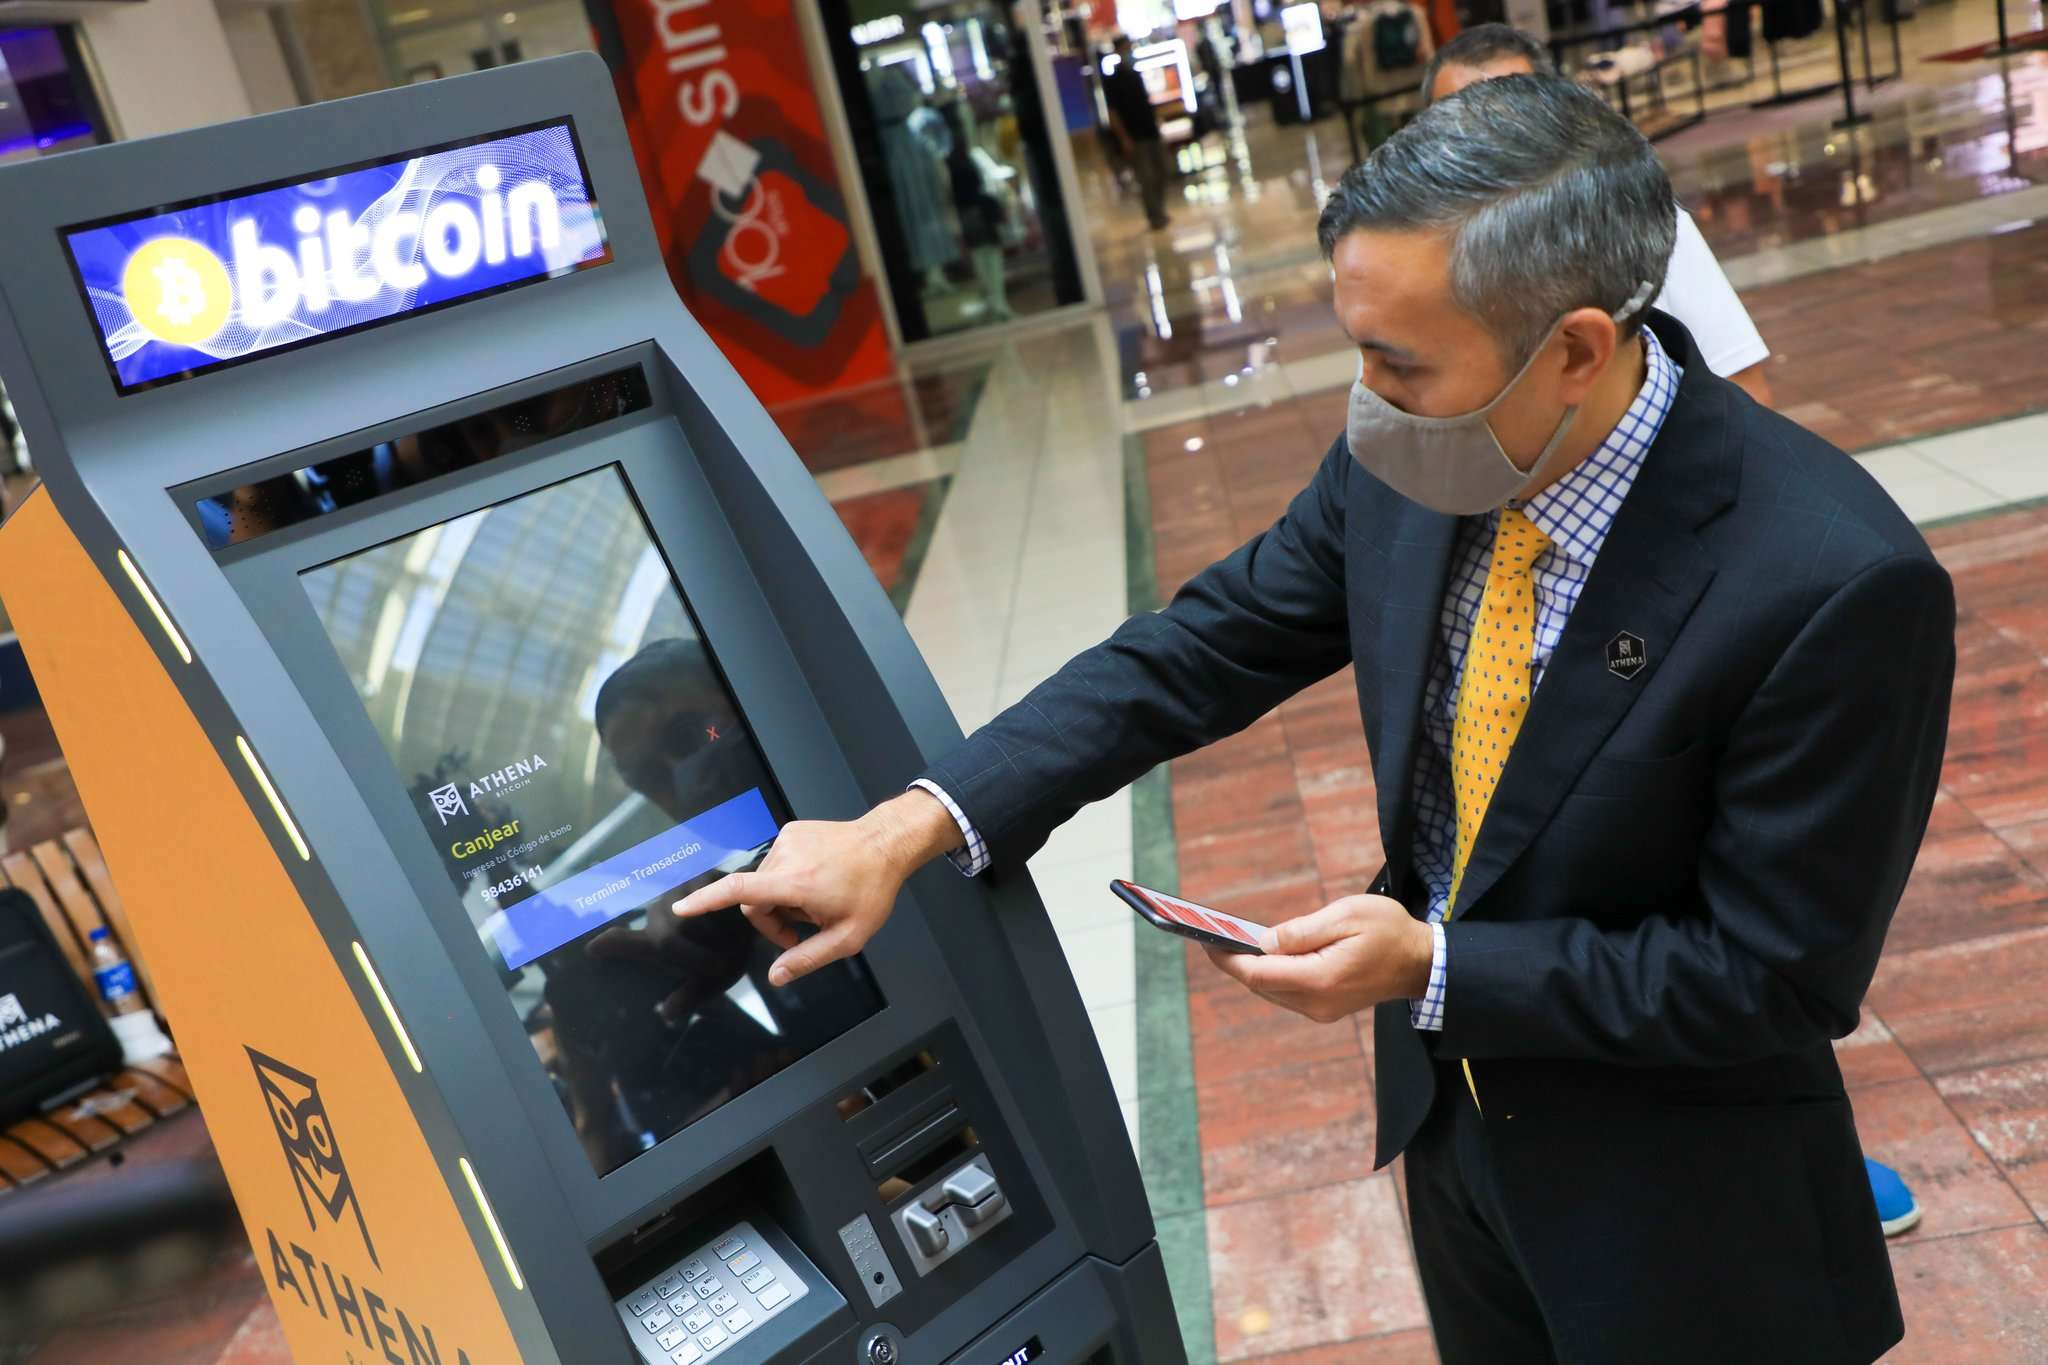 El Salvador is pushing for the use of Bitcoin with ATMs, digital wallets and free money — but participation is not 'mandatory'